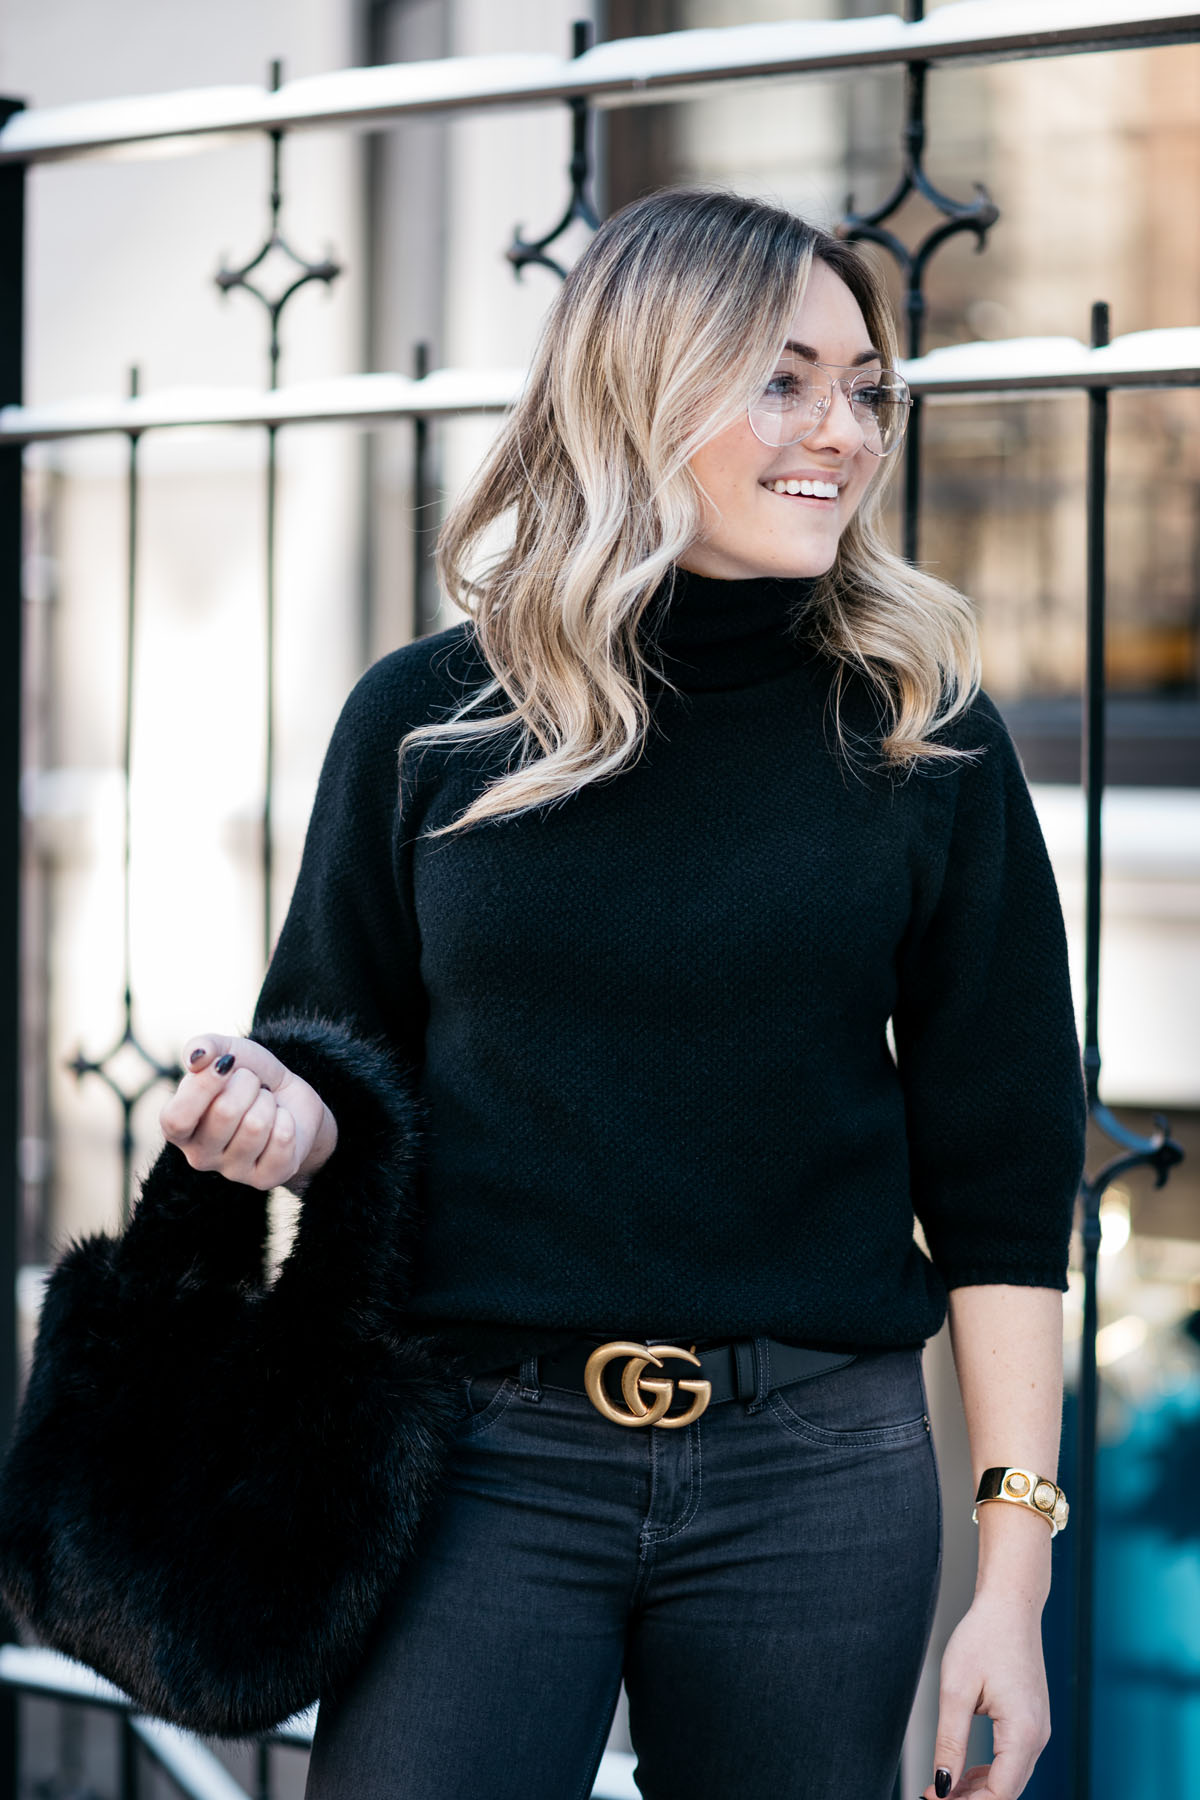 Jessica Sturdy, a Chicago fashion and travel blogger, wearing H&M clear glasses, a Max Mara black turtleneck, and a Gucci GG gold logo belt with a J.Crew shearling bag.